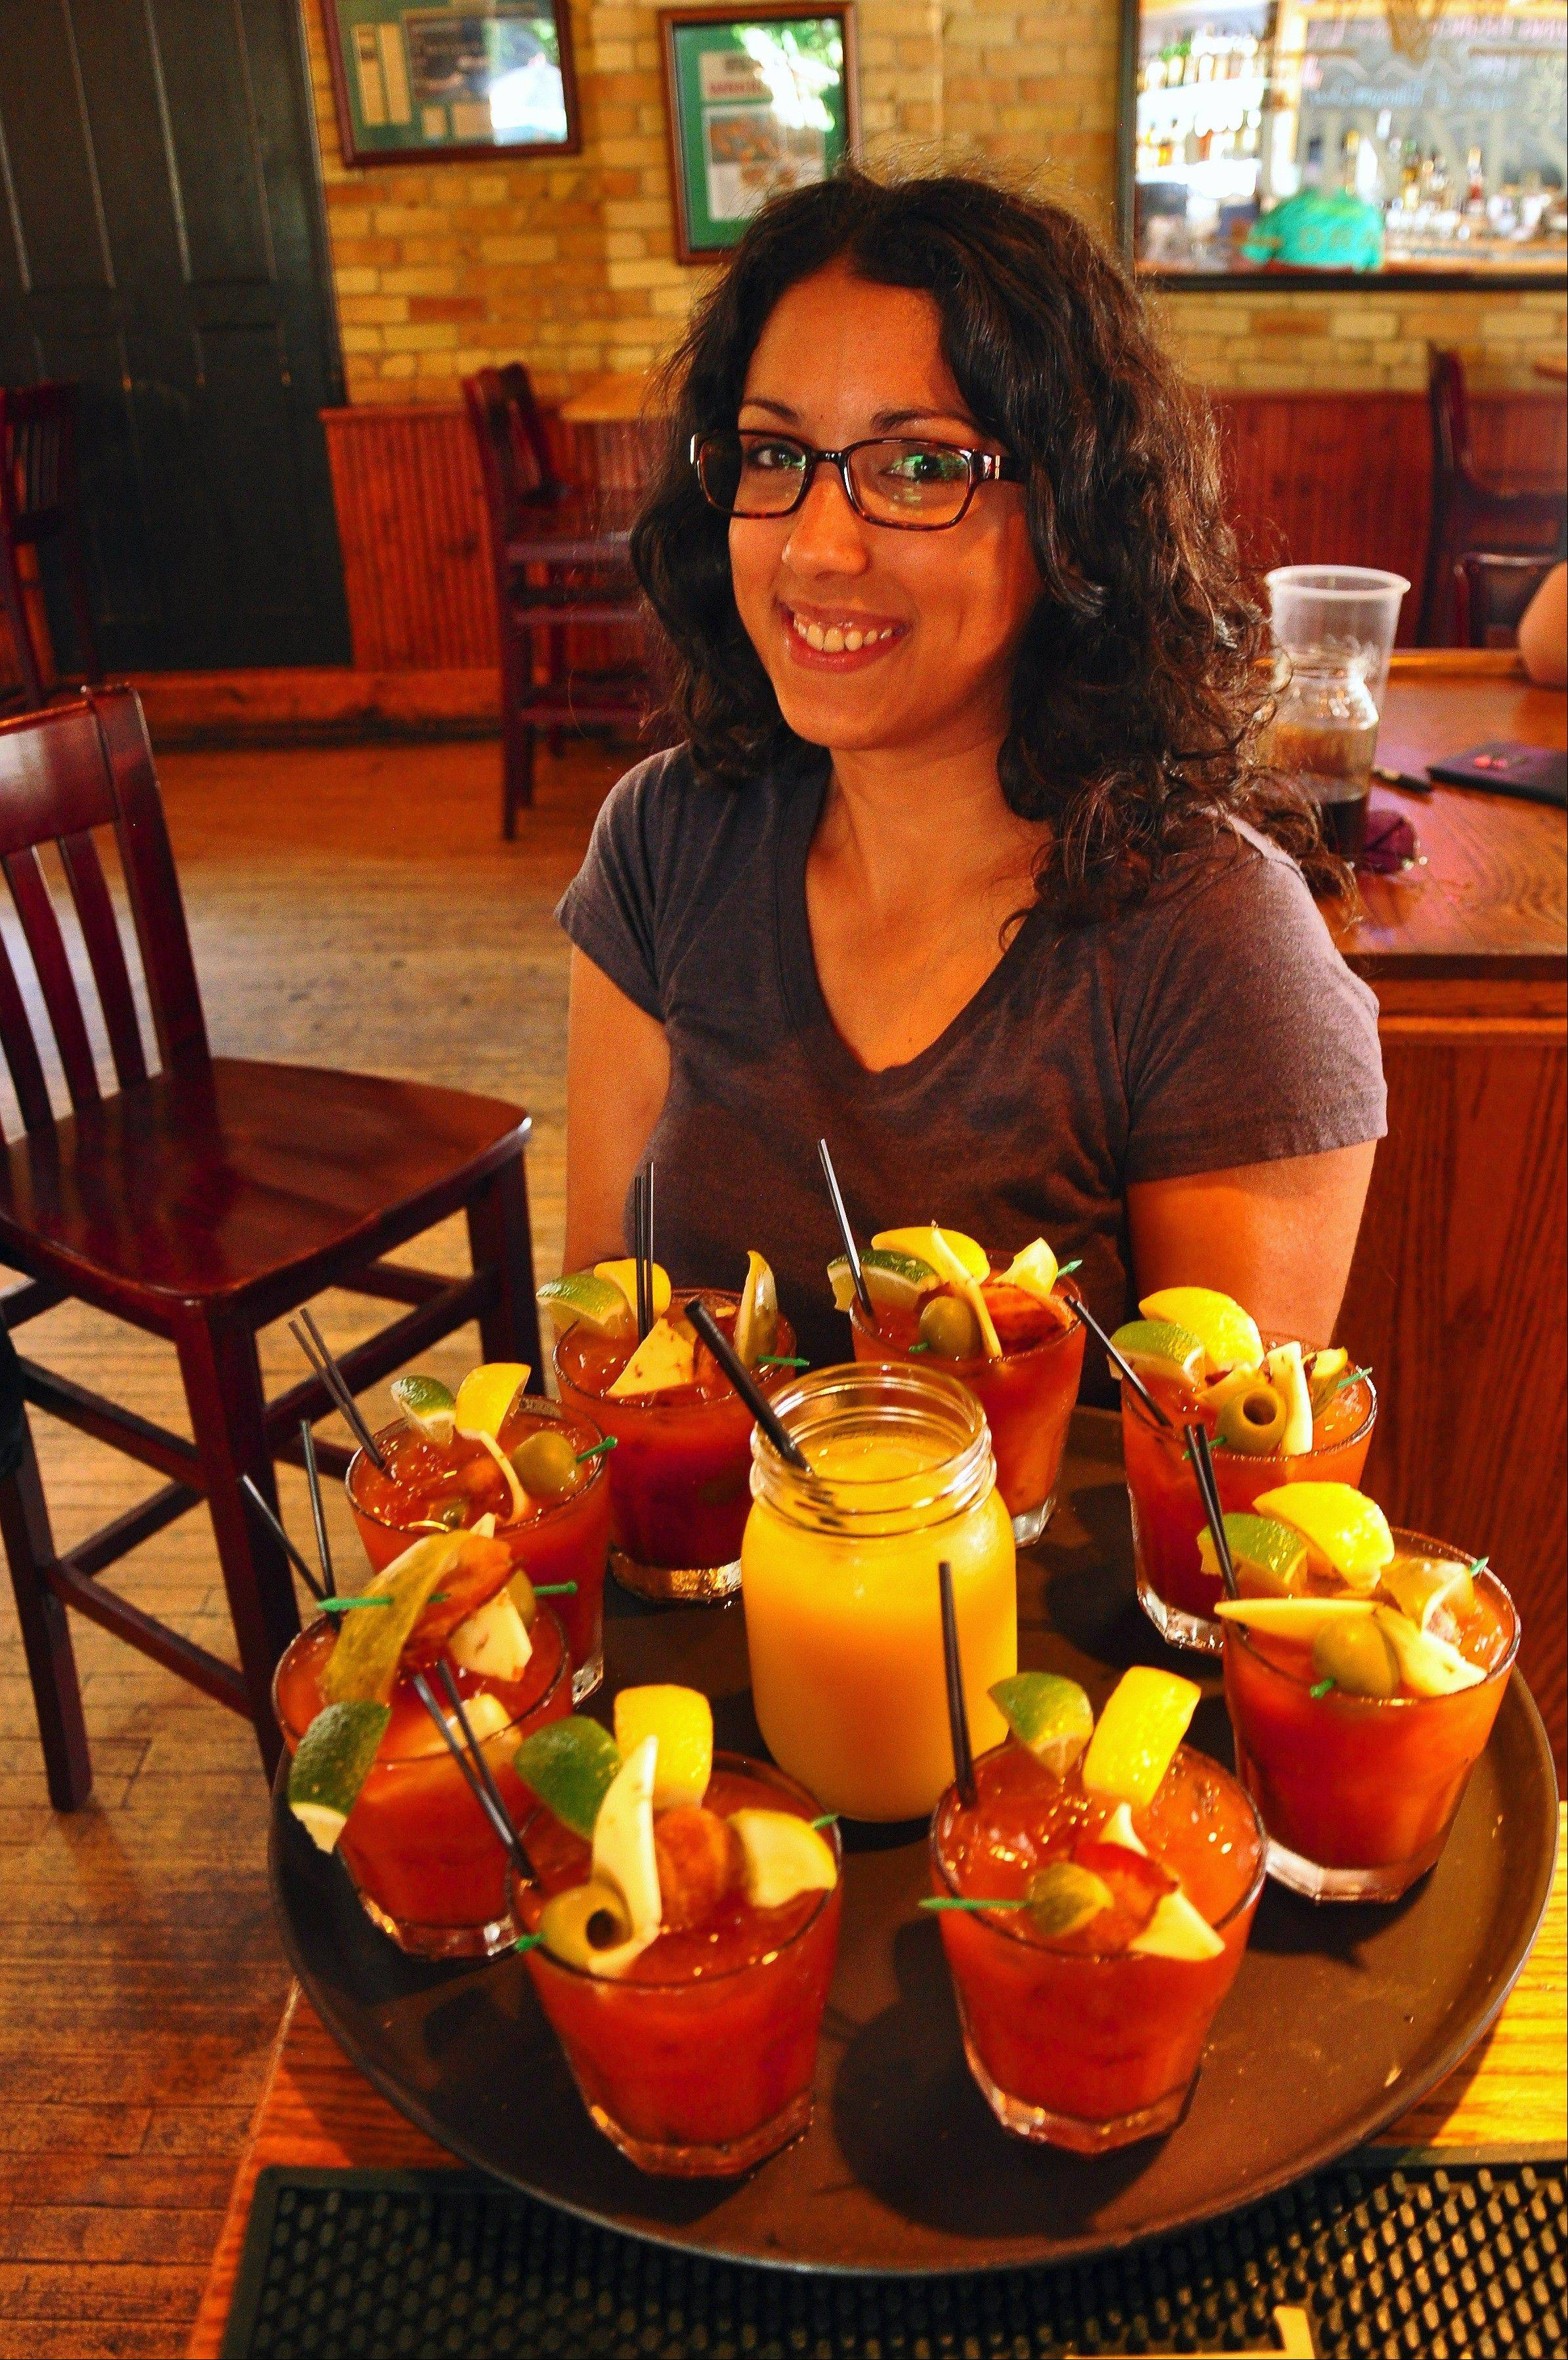 Bloody Marys and Bloody Mollys are served up at The Irish Pub during Milwaukee Food Tours' Bloody Mary Brunch tour. For those not imbibing, there's orange juice.